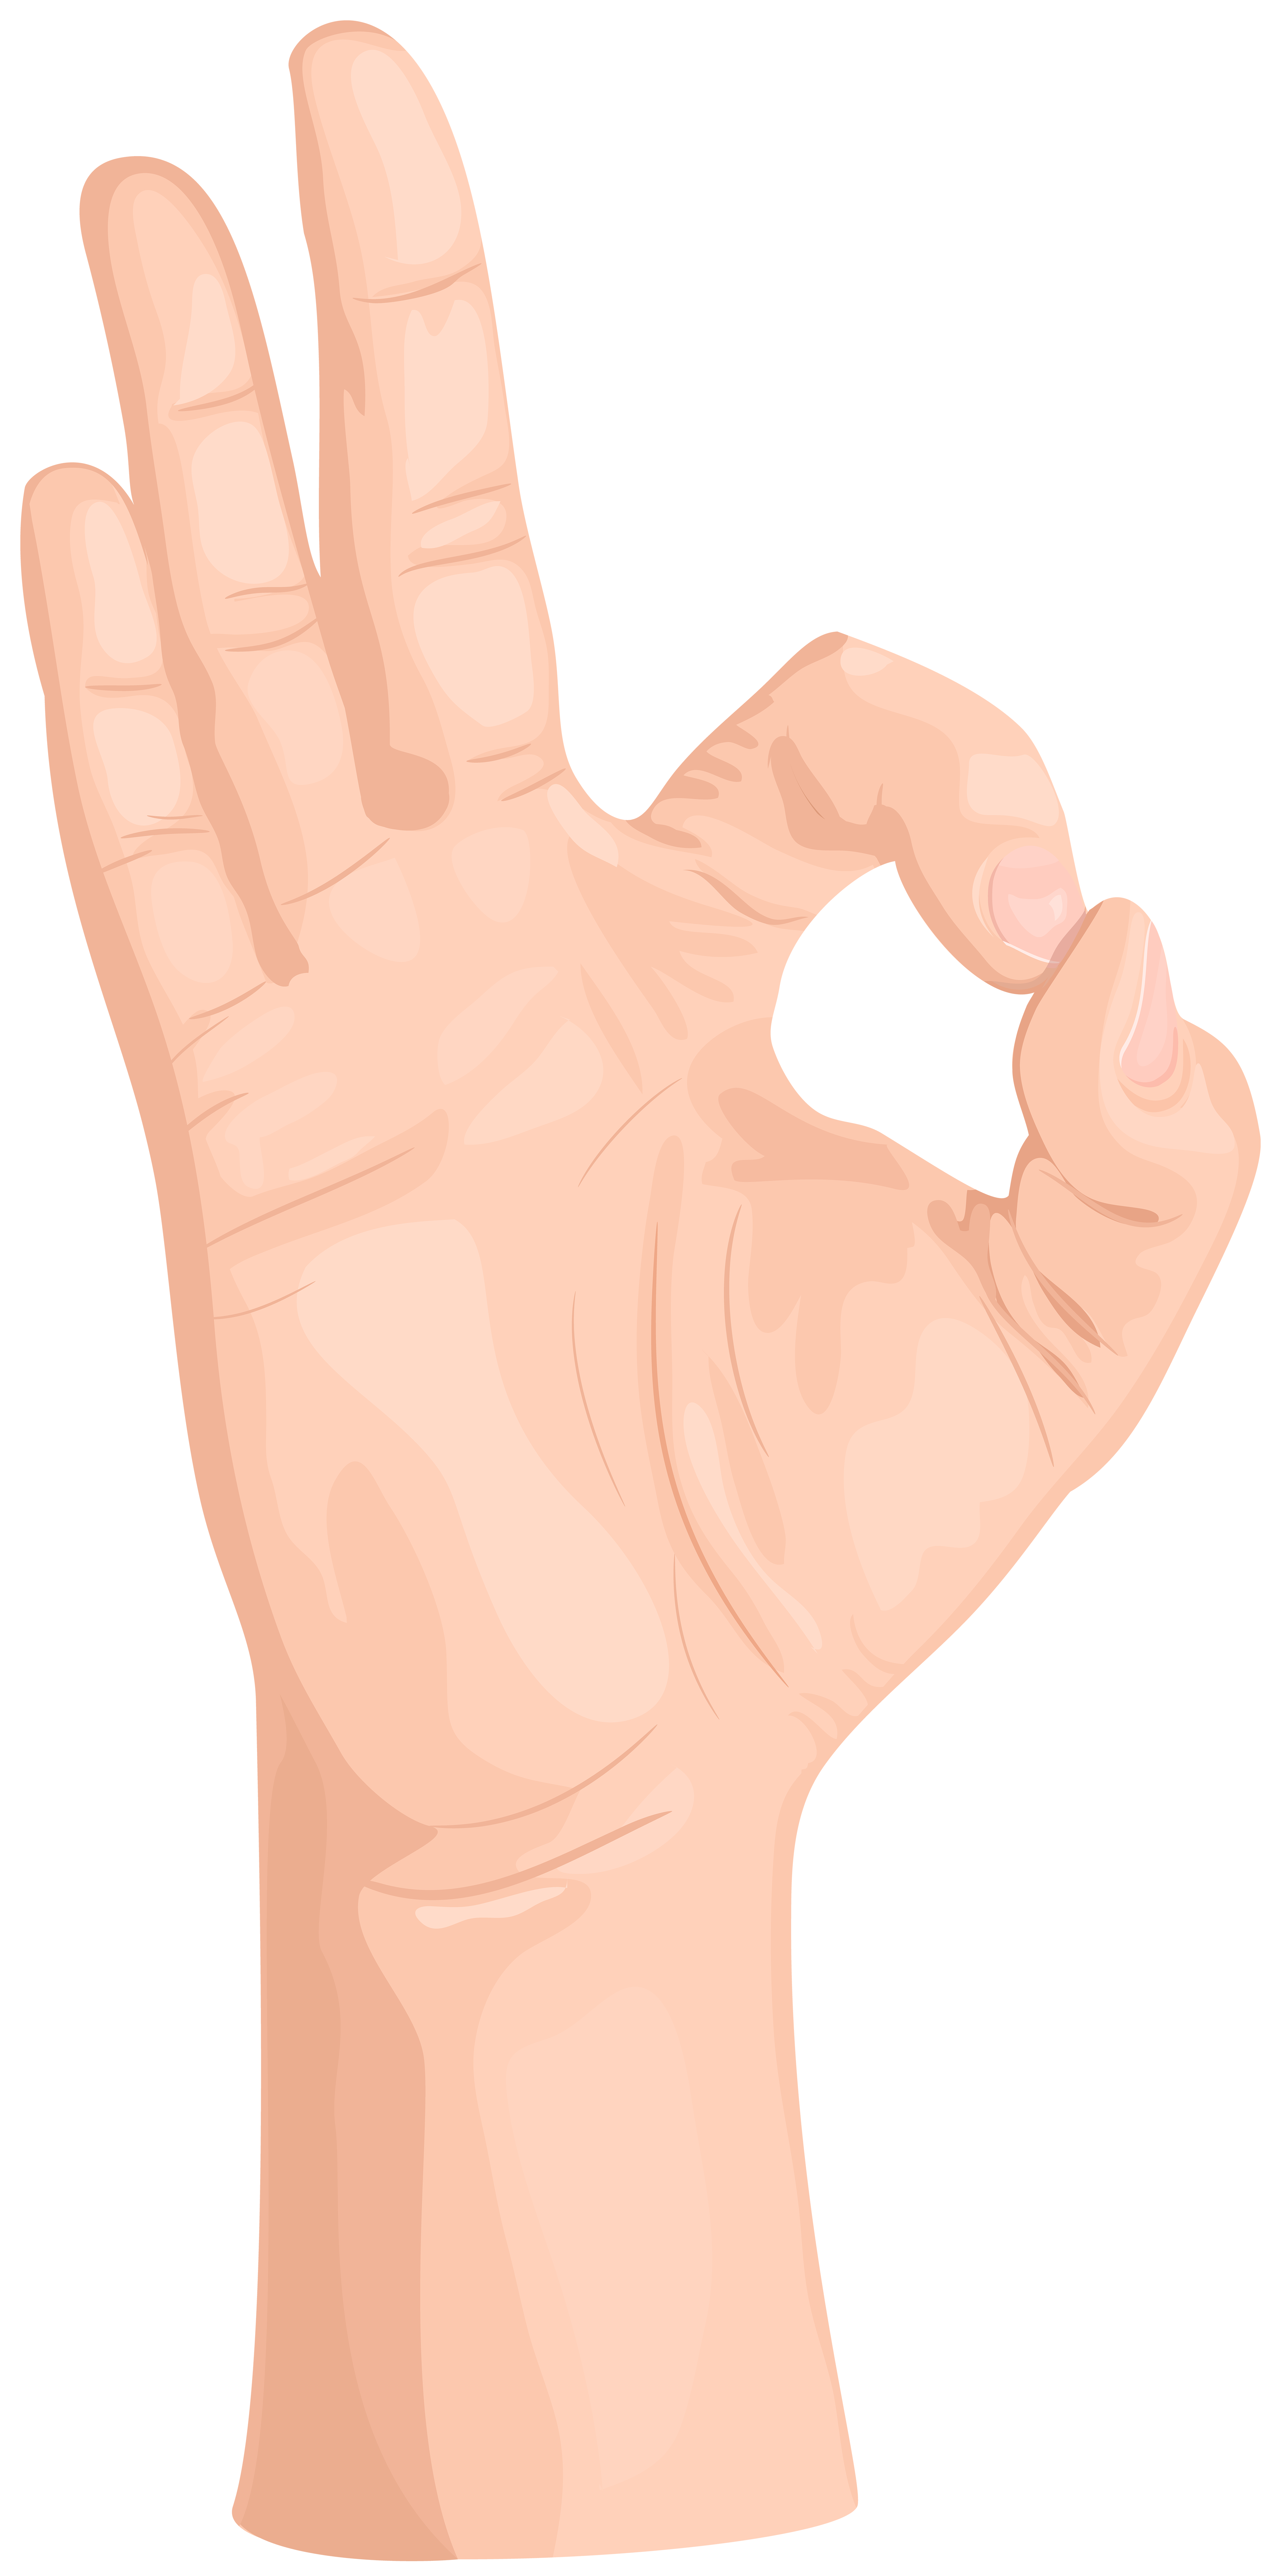 Fingers clipart okay. Ok hand gesture transparent